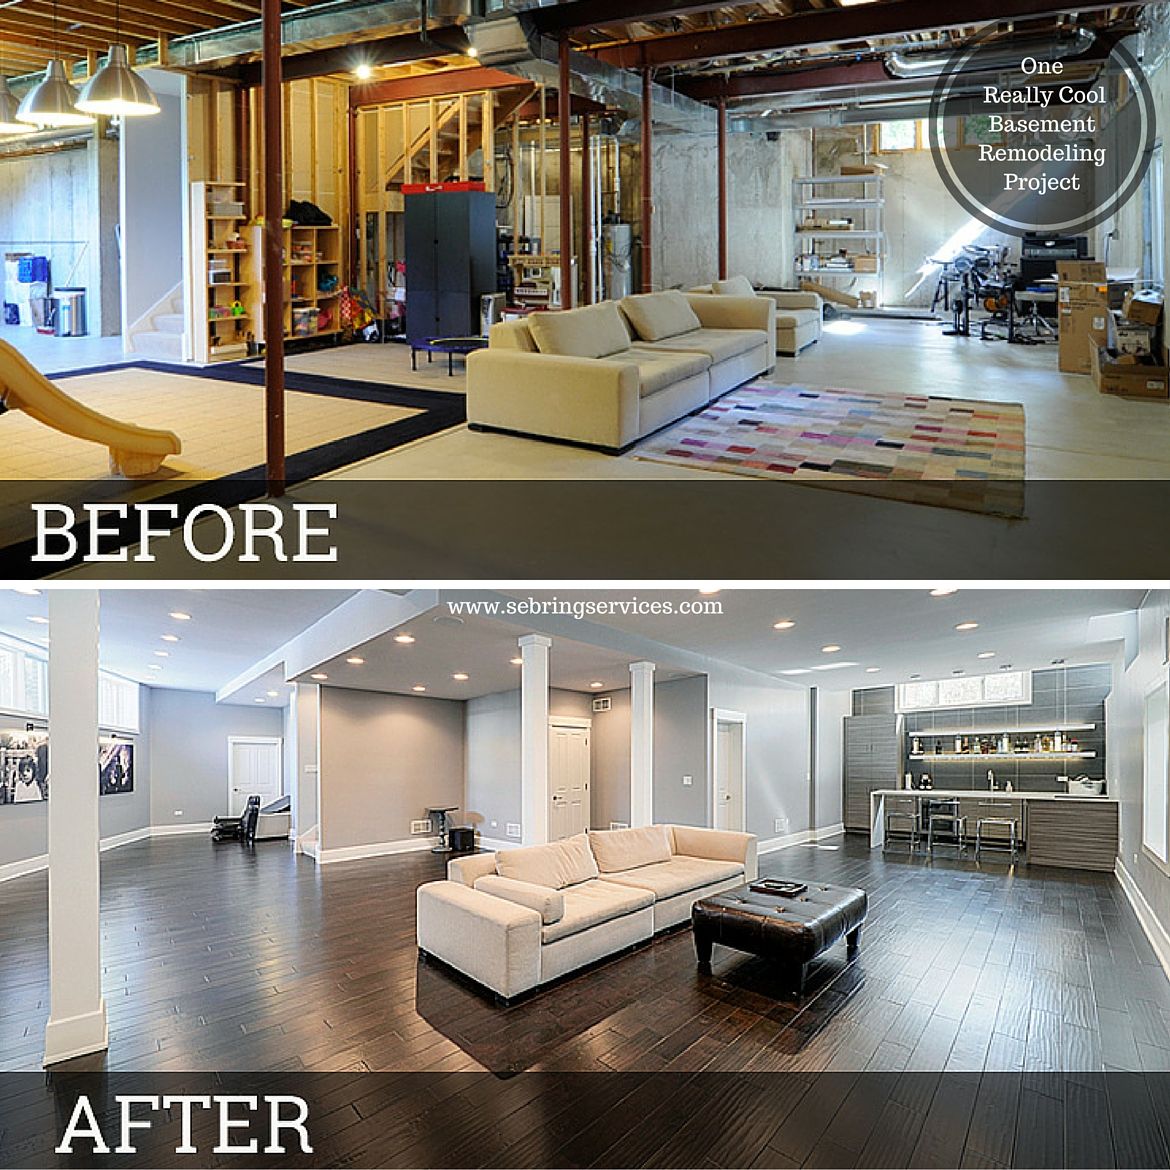 Before After One Really Cool Basement Remodeling Project Home Remodeling Contractors